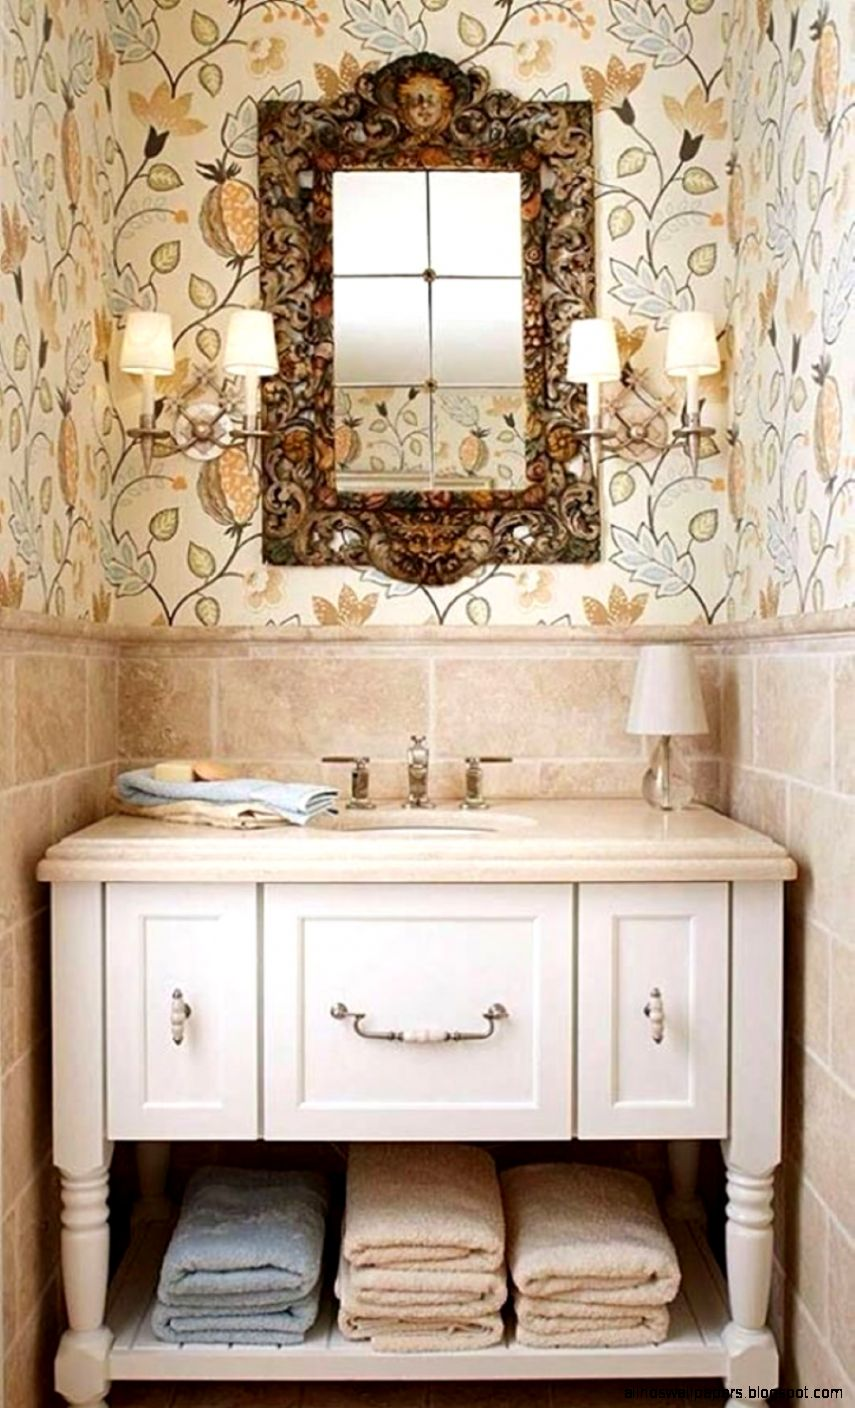 Bathroom Awesome Small Powder Room Vanity Designs   Dylan Gallery